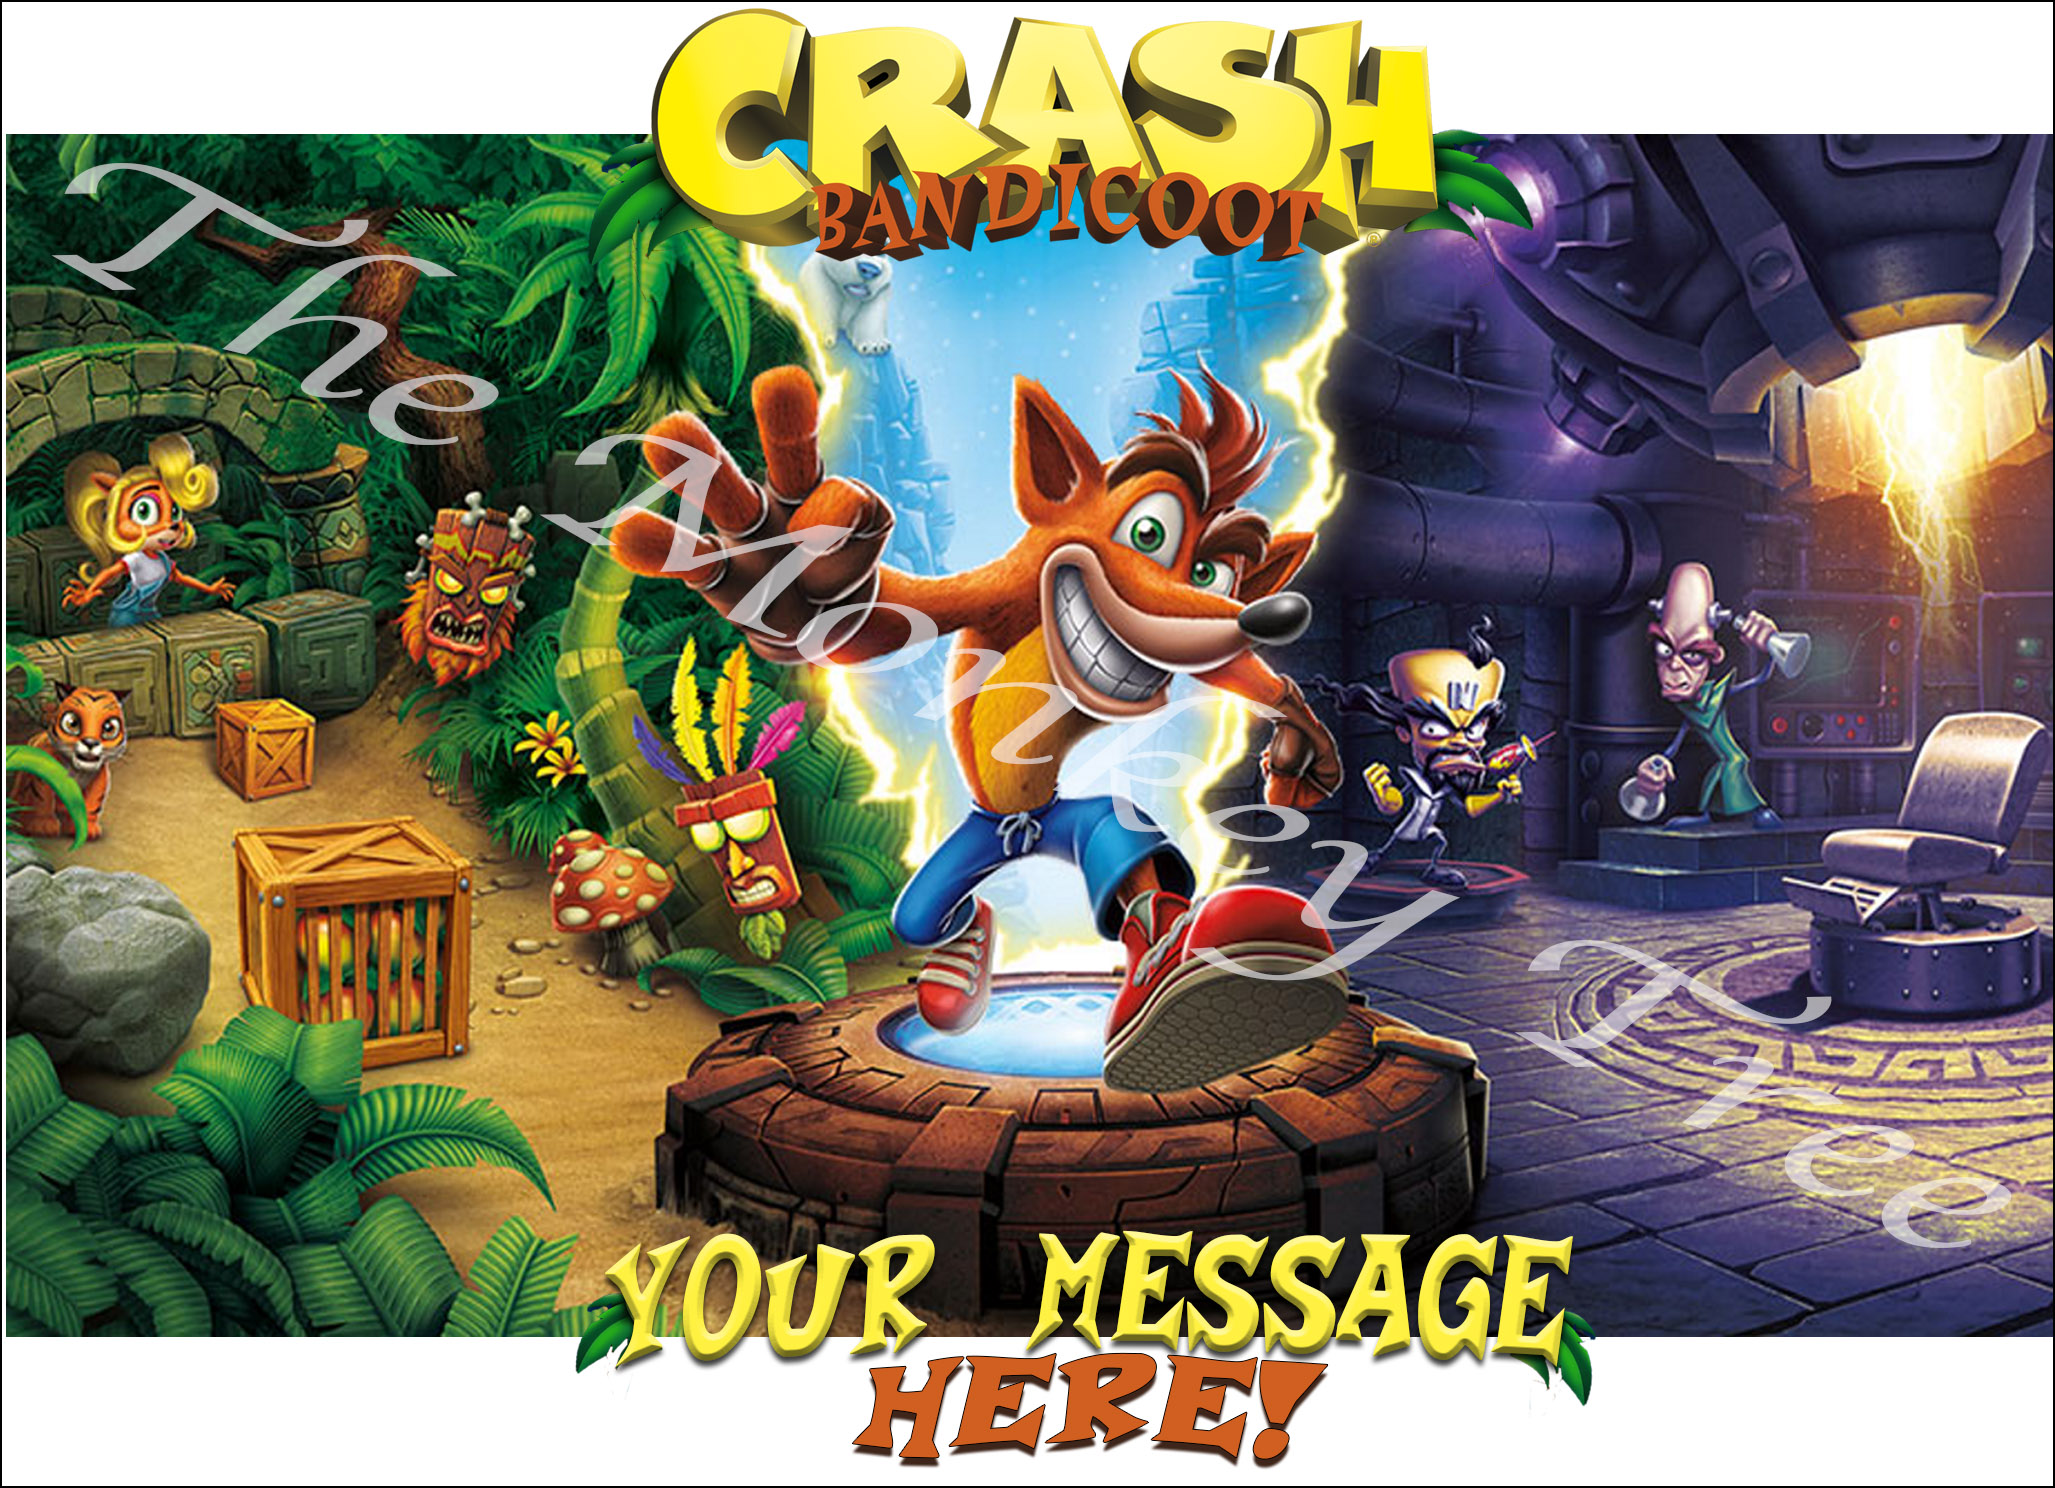 Crash Bandicoot Personalised A4 Edible Cake Image Topper The